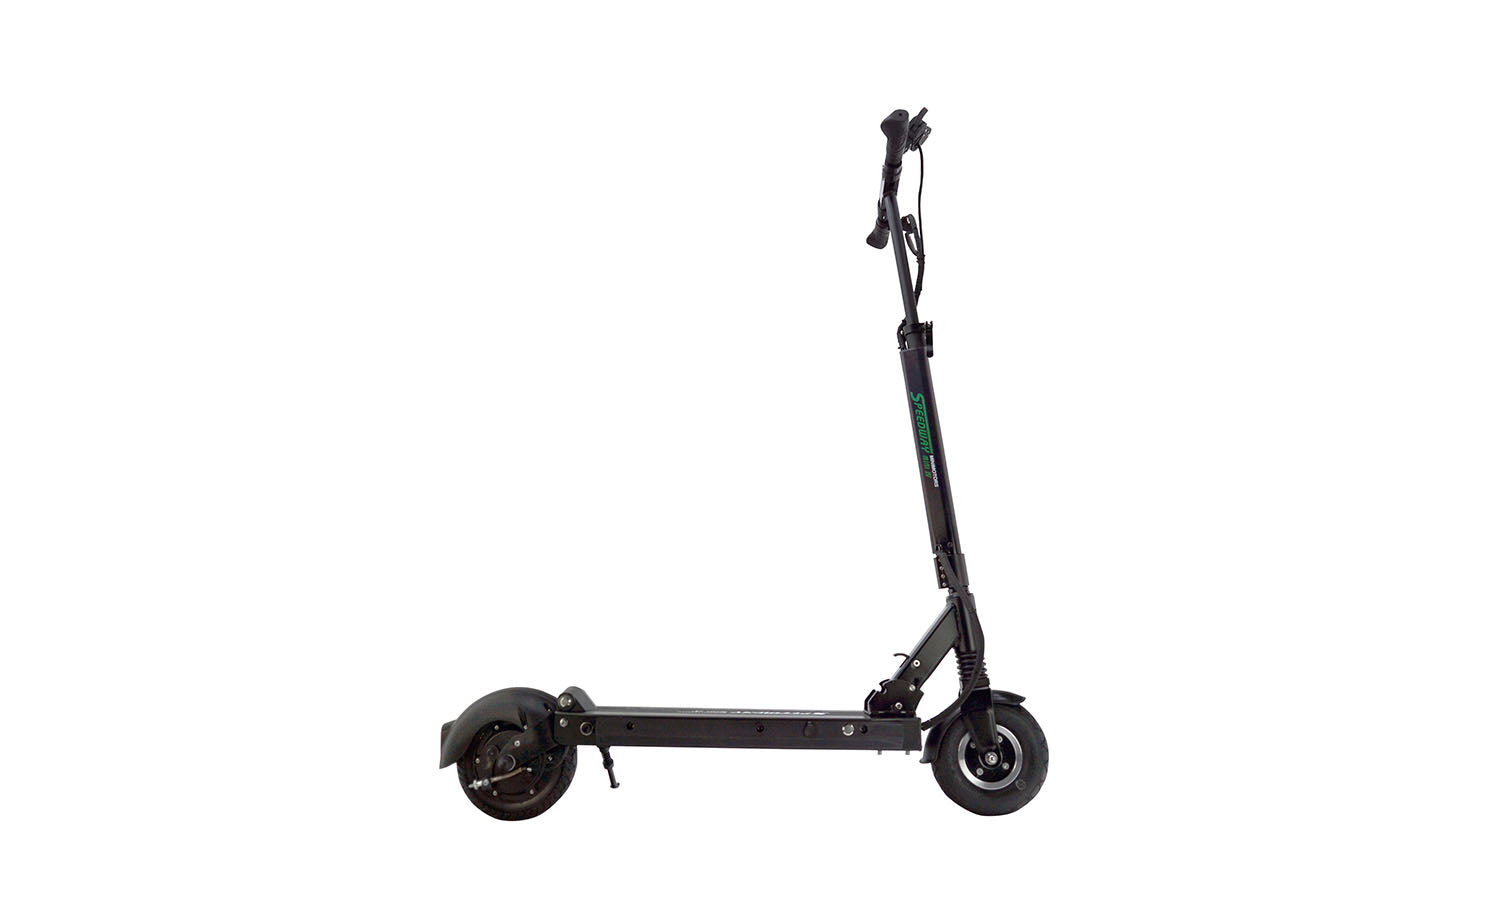 MiniMotors USA - Dualtron and Speedway - The Best Electric Scooters